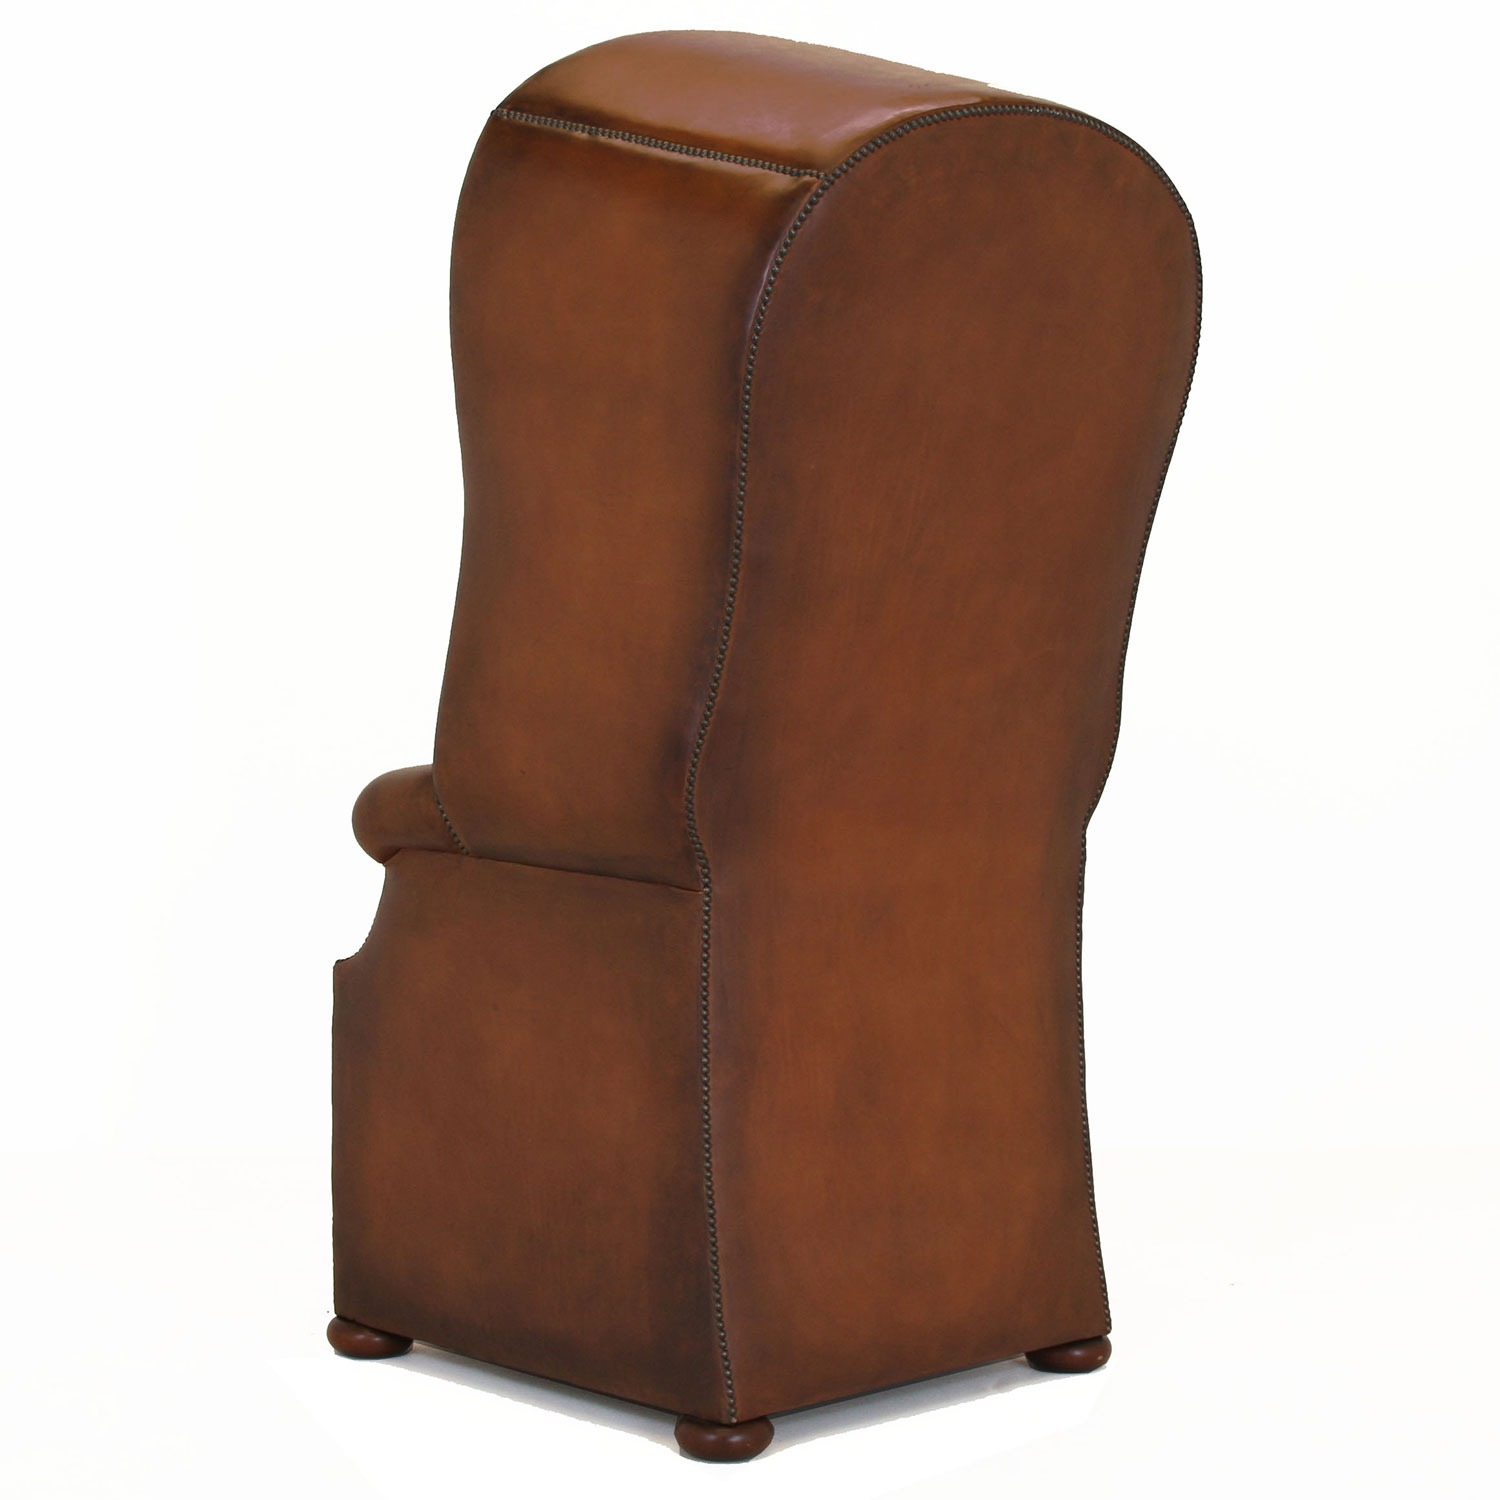 Porters chair in hand dyed hide